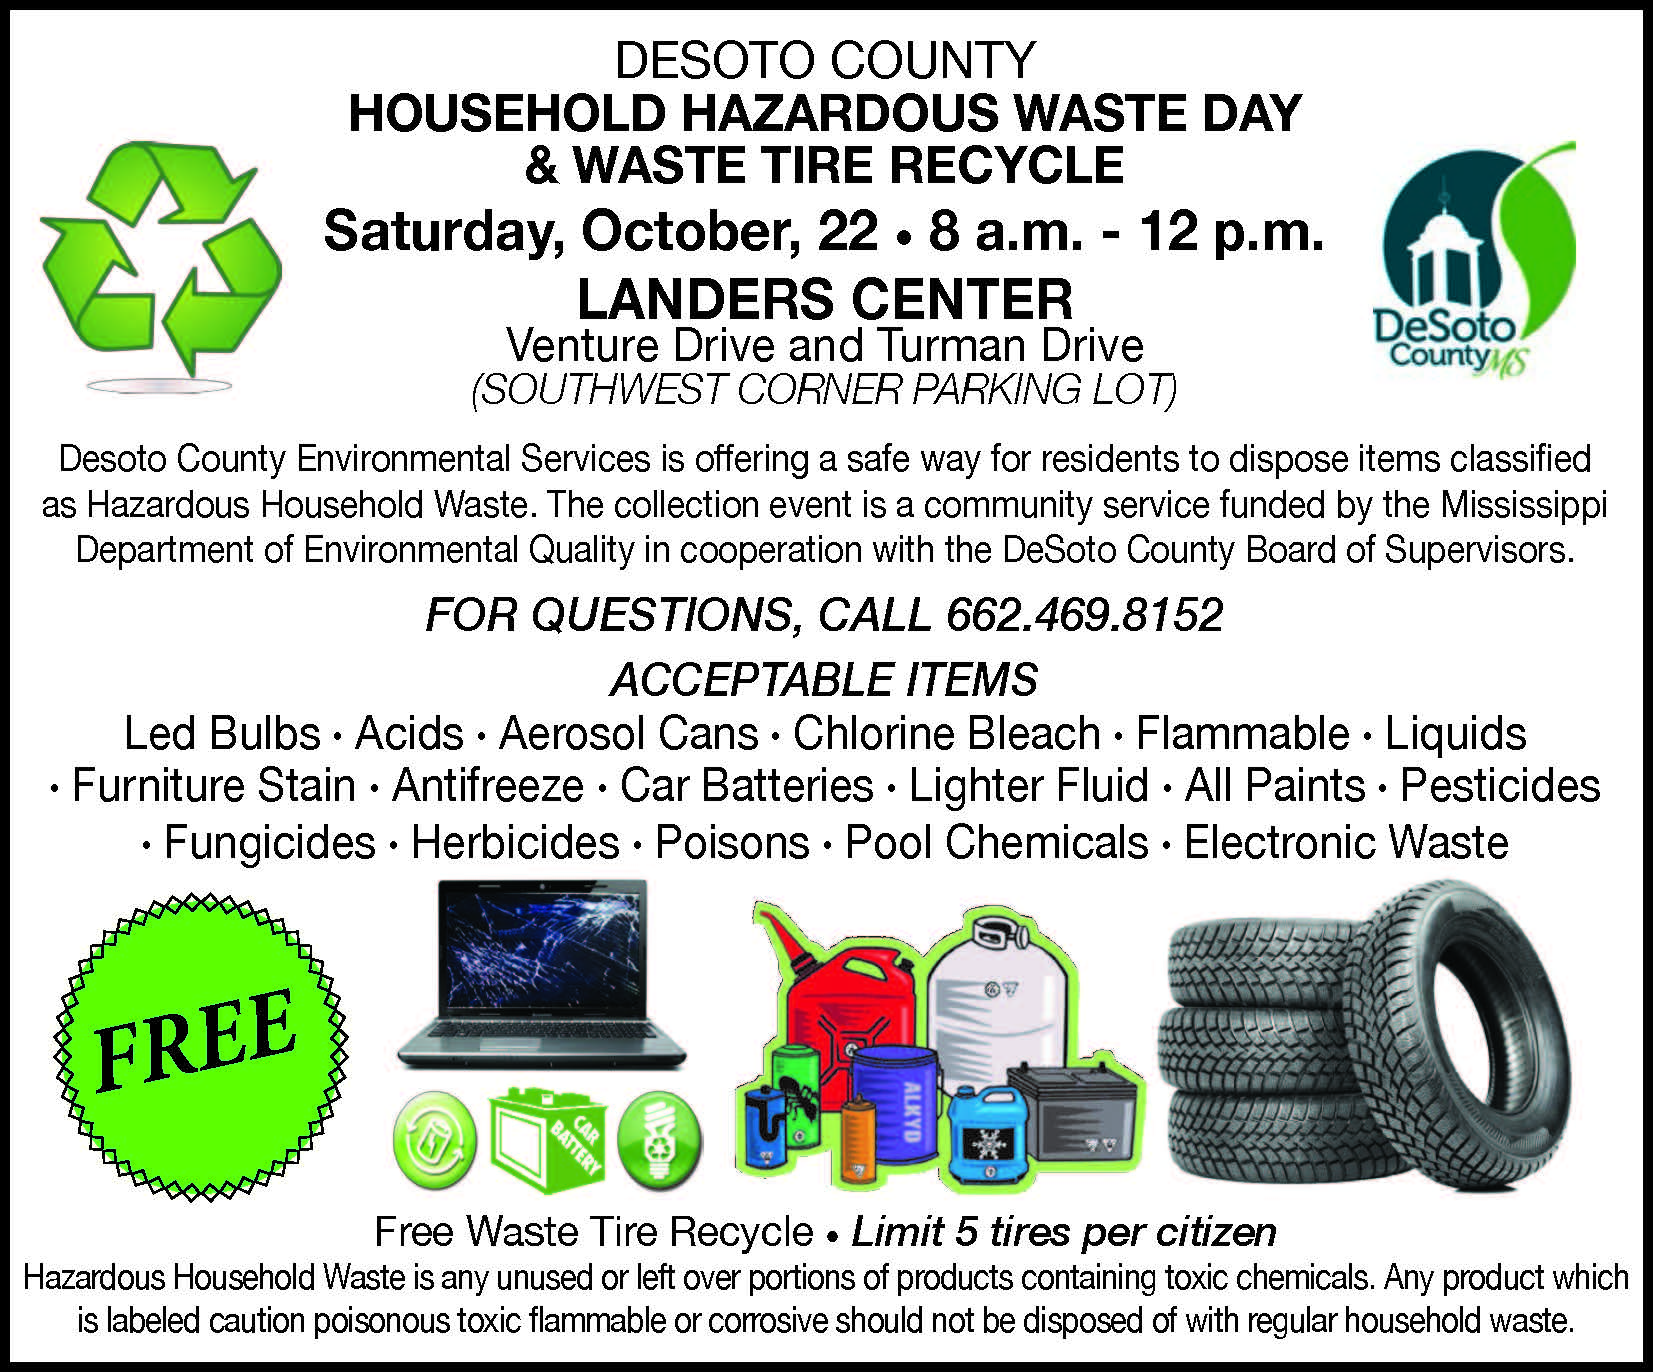 Hazardous Waste Flyer indicating recycling times at the Landers Center